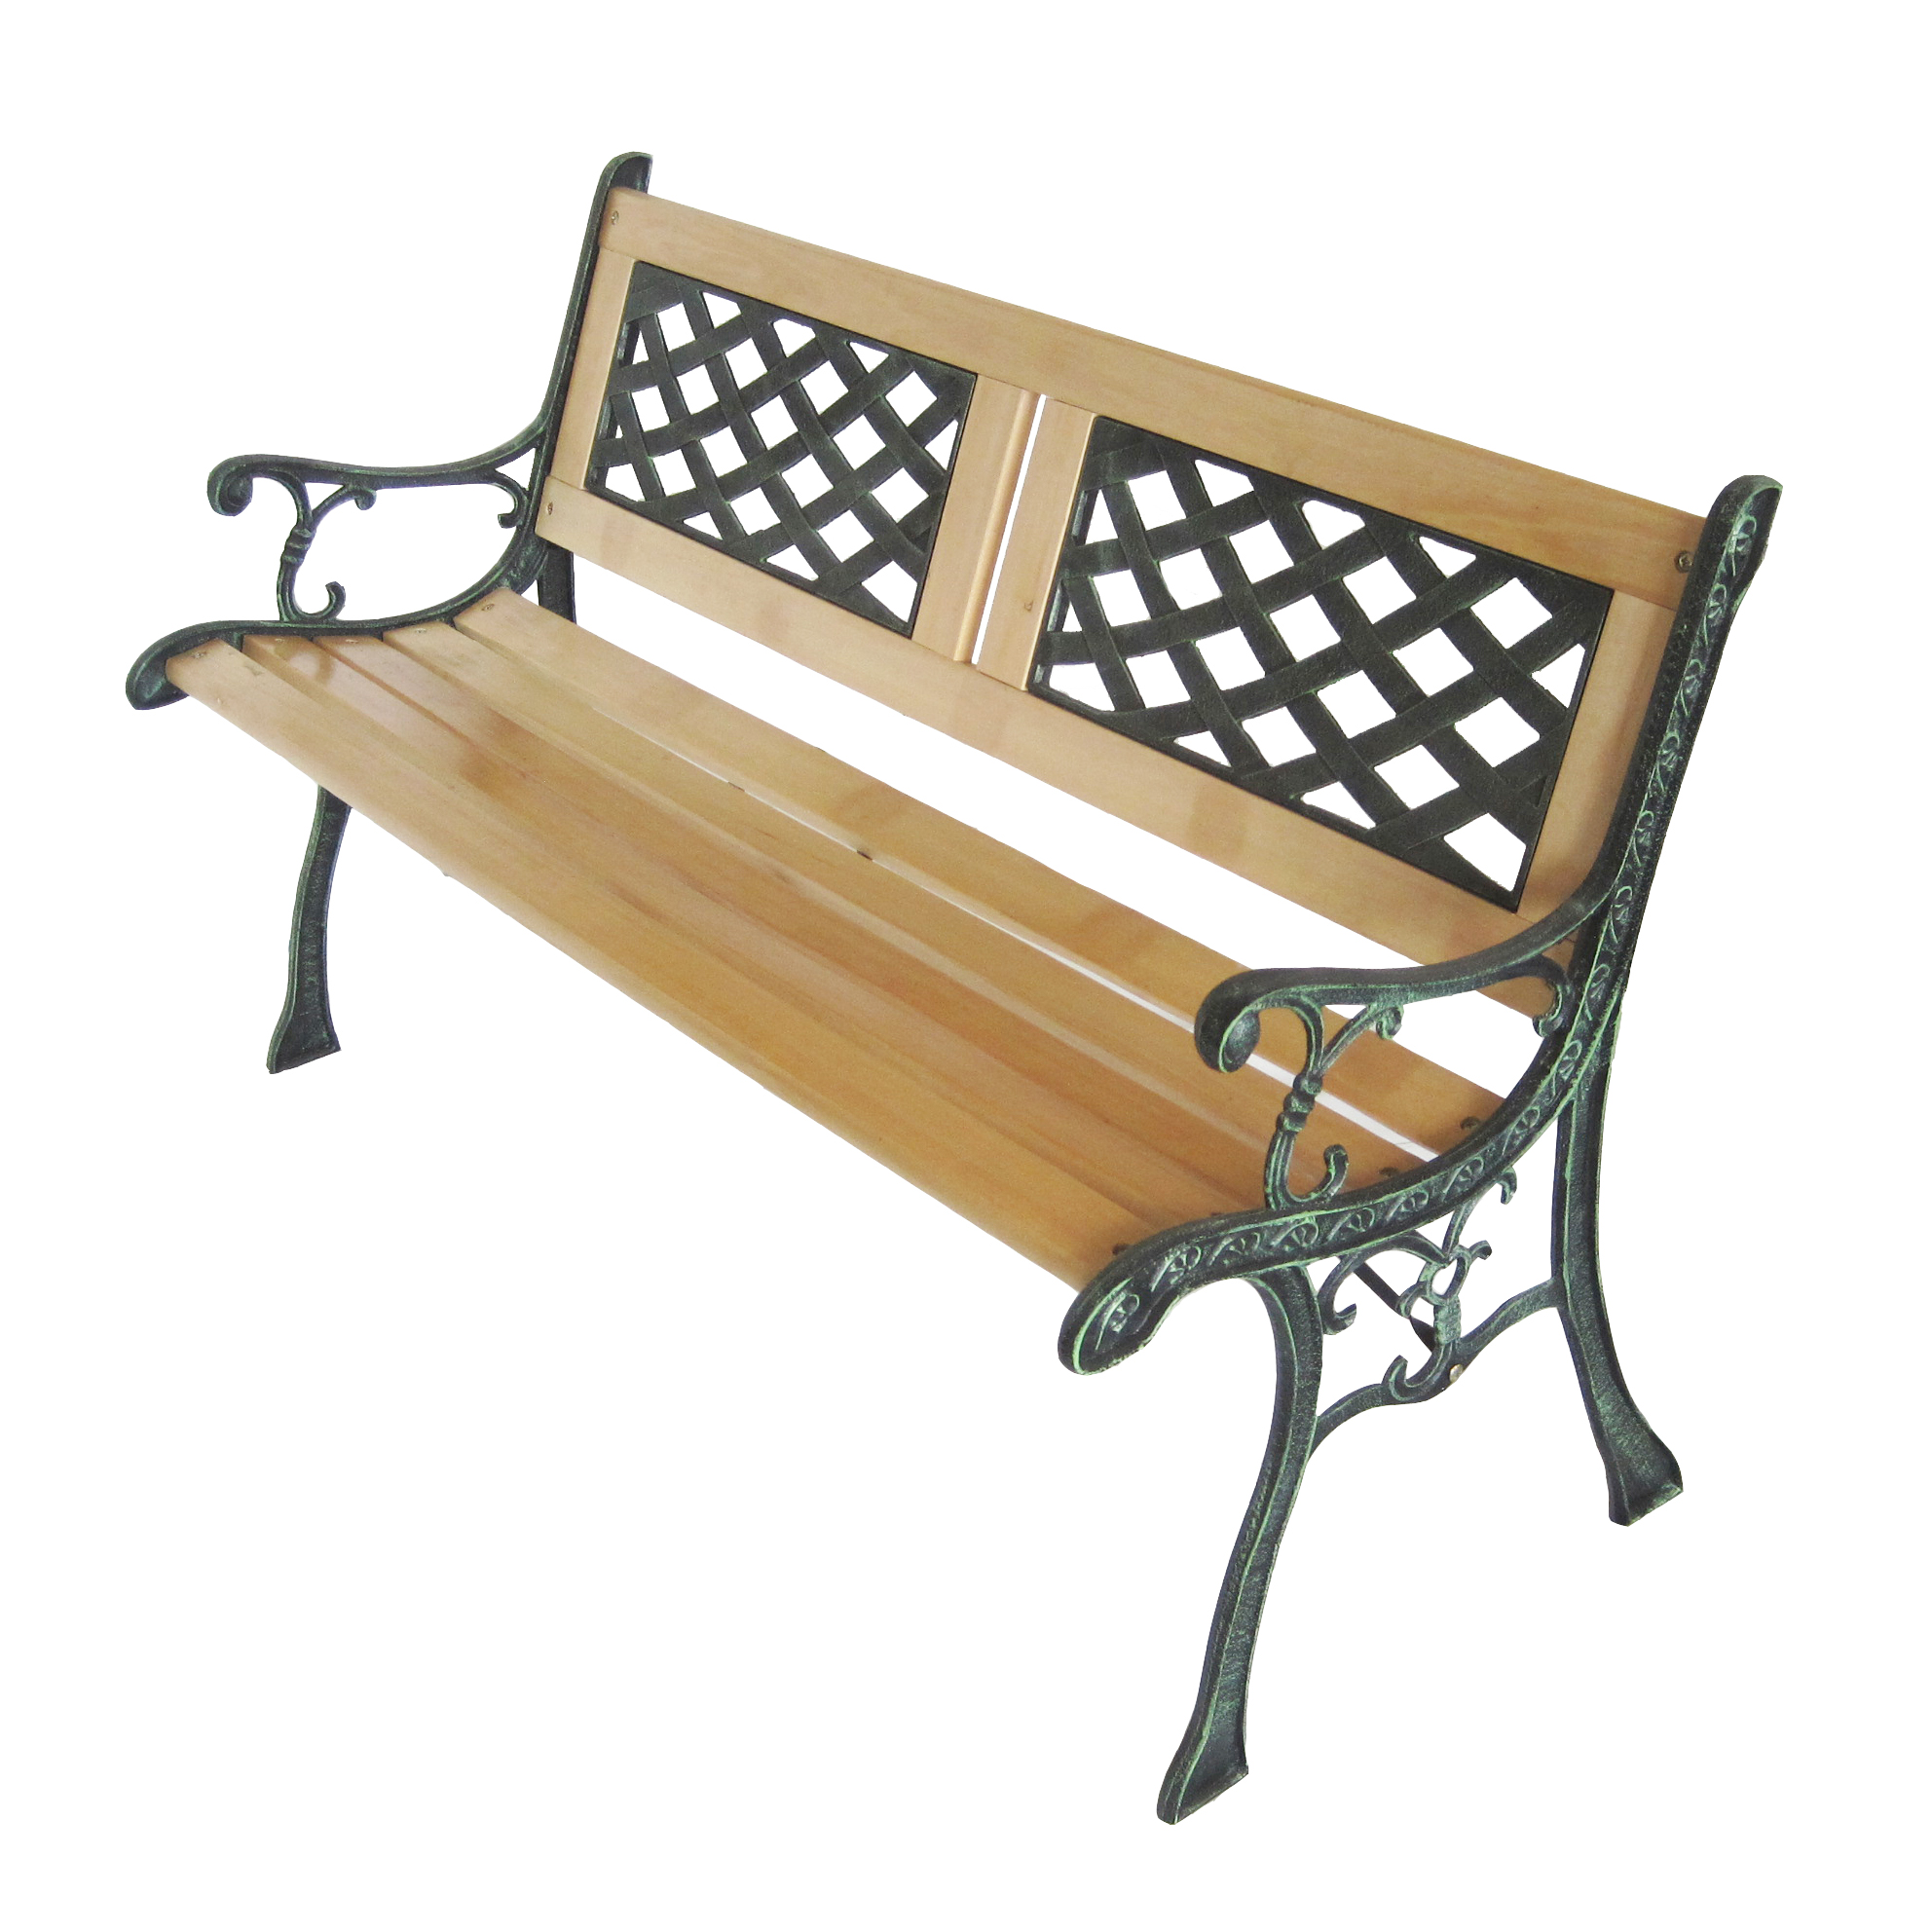 outdoor picnic seat aluminum itm table camping portable folding seats bench wooden